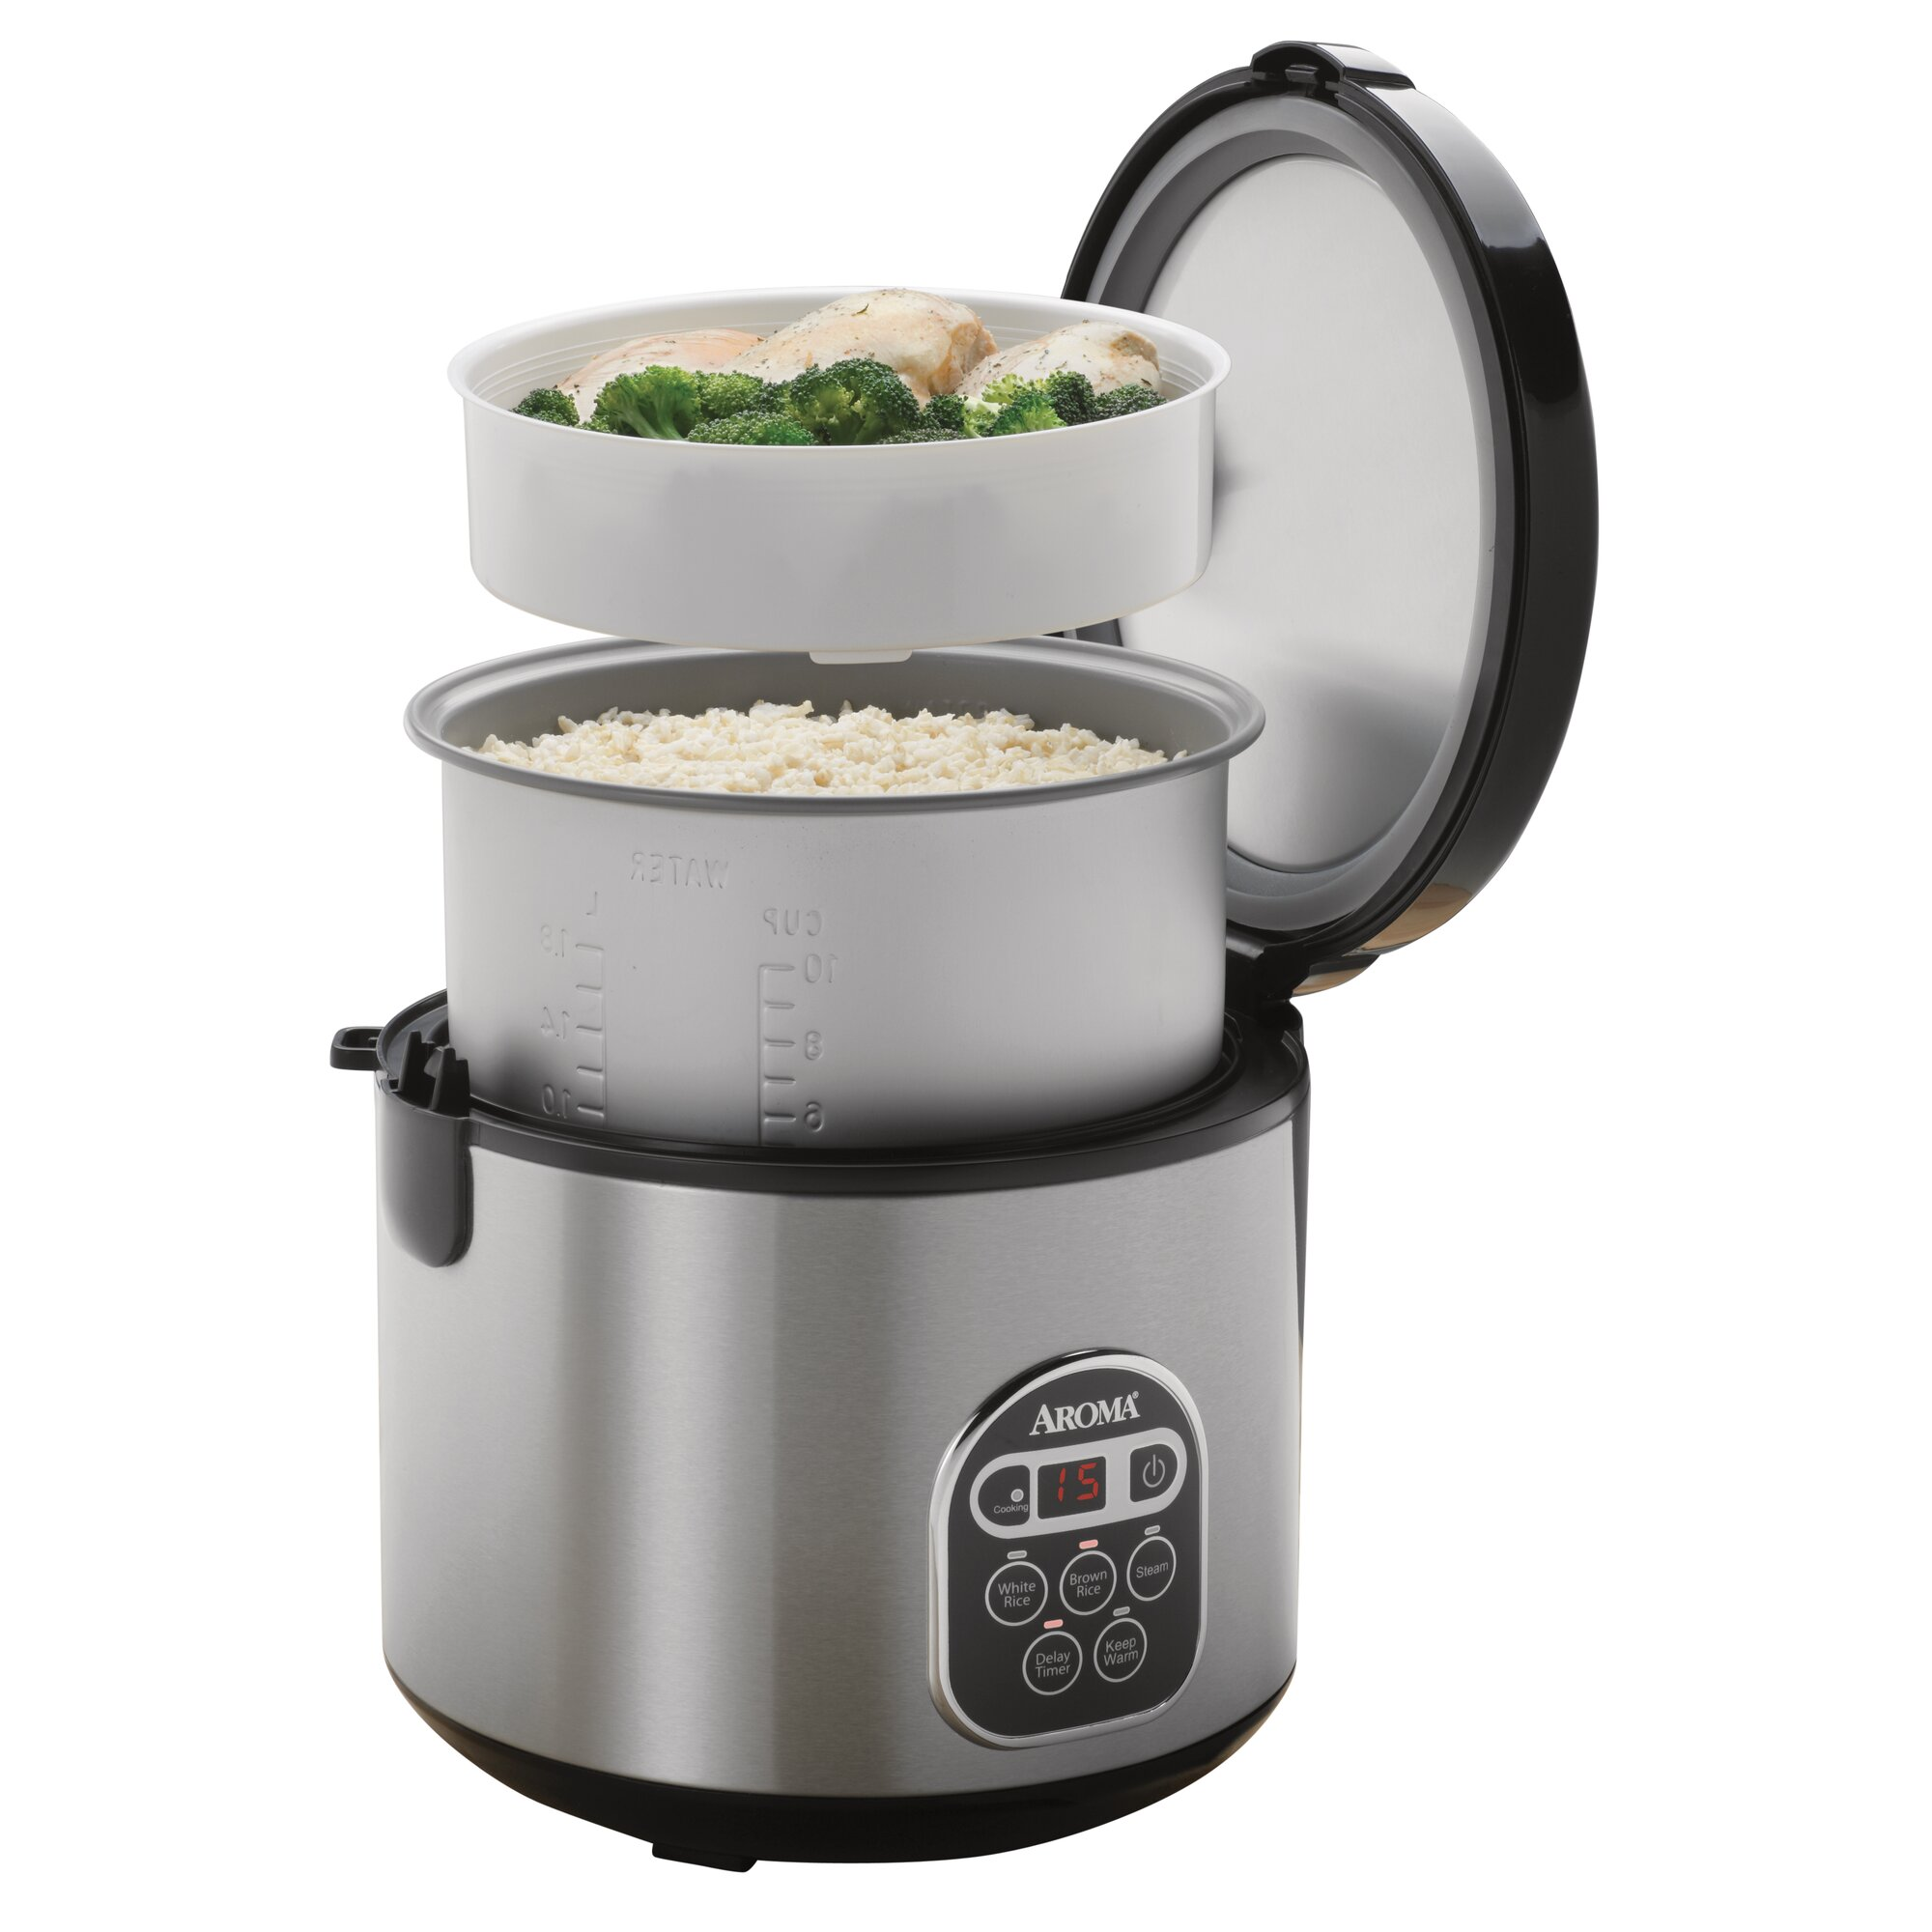 20cup Stainless Steel Digital Slow Cooker, Food Steamer And Rice Cooker